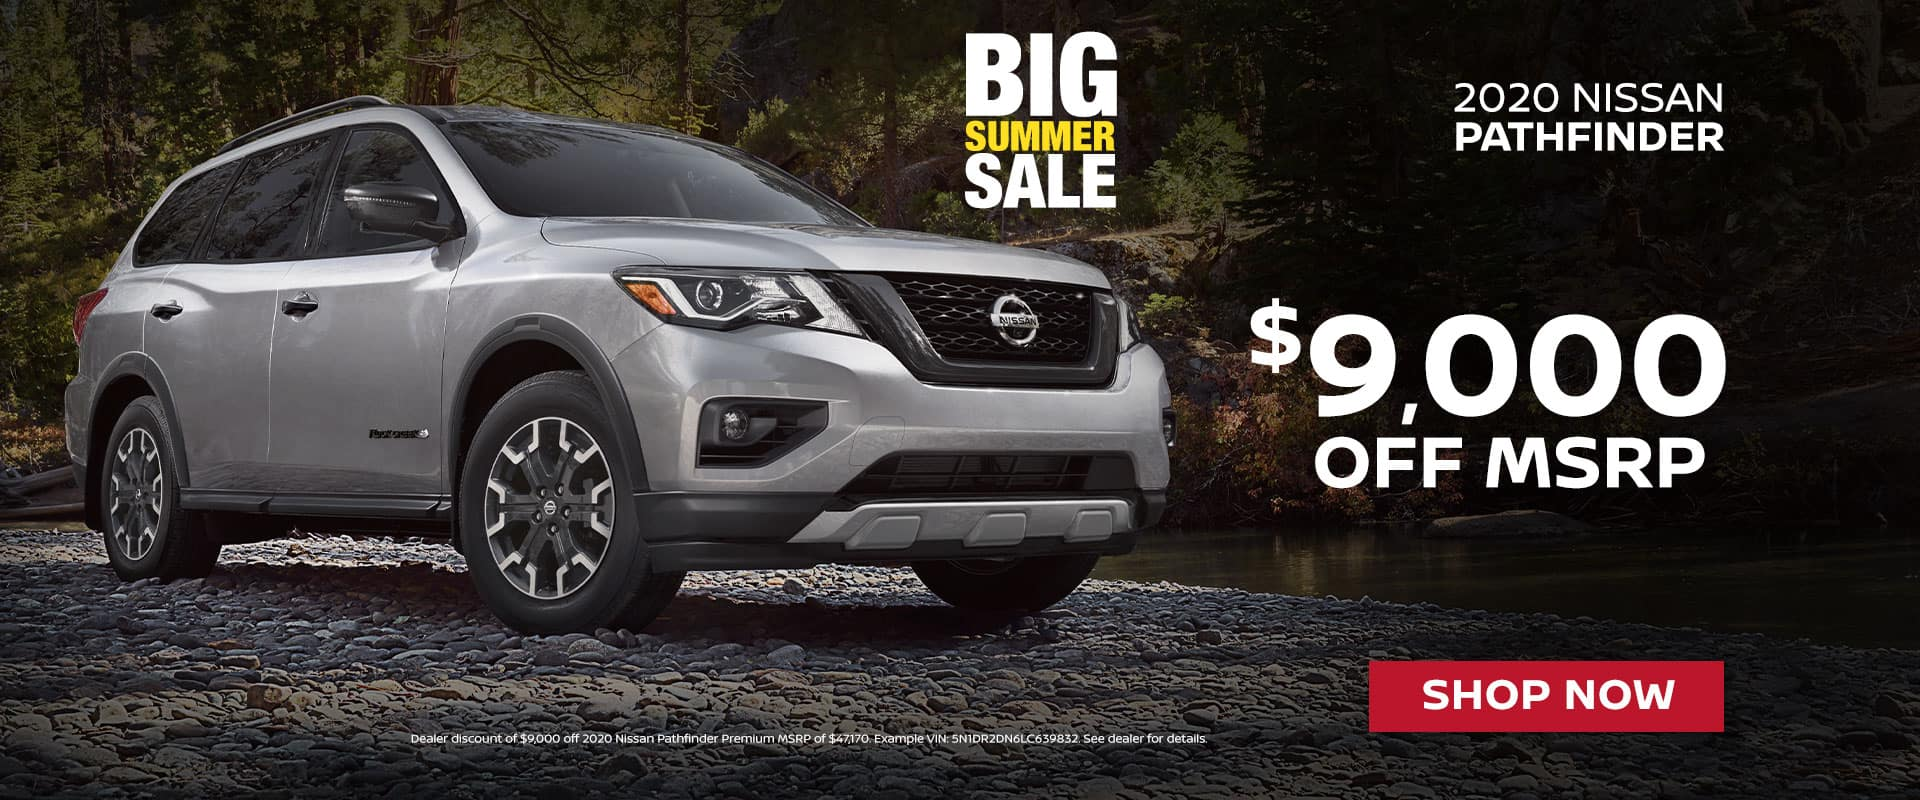 New 2020 Nissan Pathfinder For Sale In Greenville